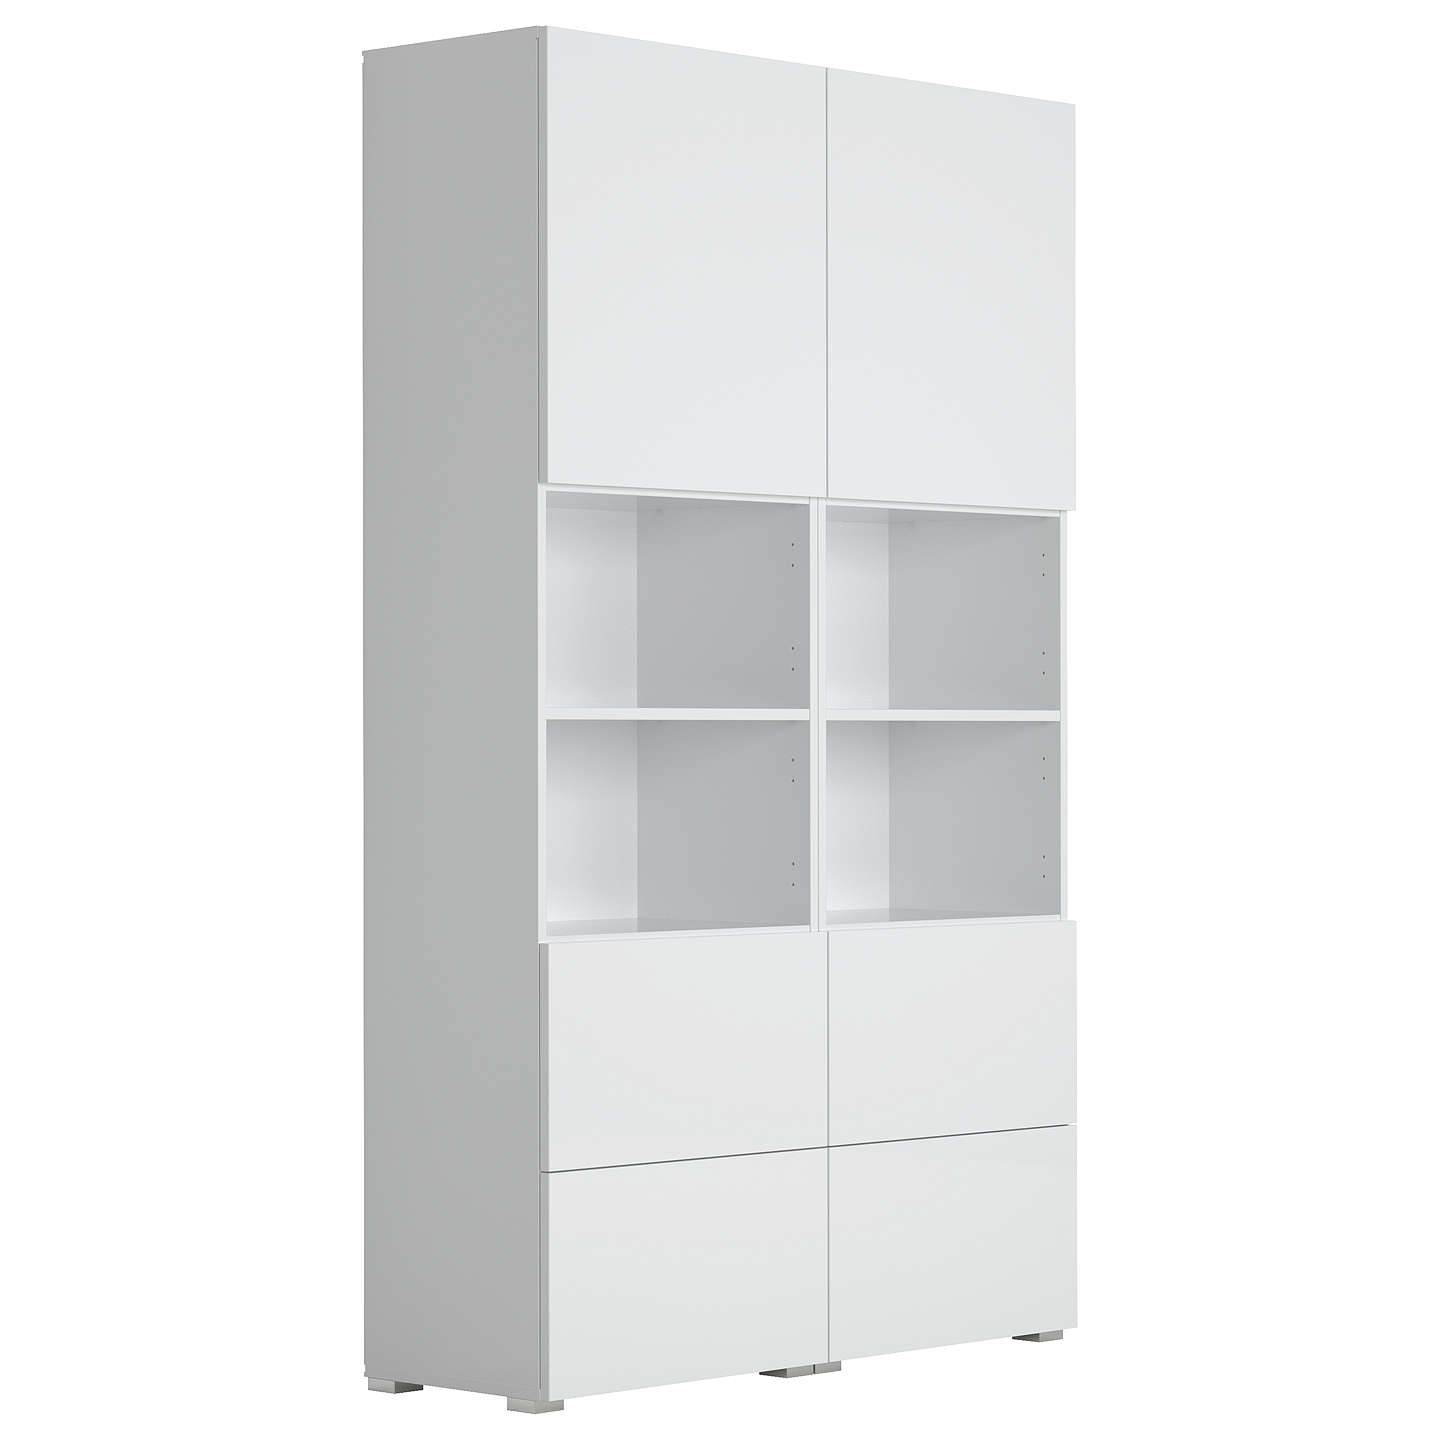 BuyHouse by John Lewis Mix it Double White unit - White frame / door (2 Mid, 4 Low) Online at johnlewis.com